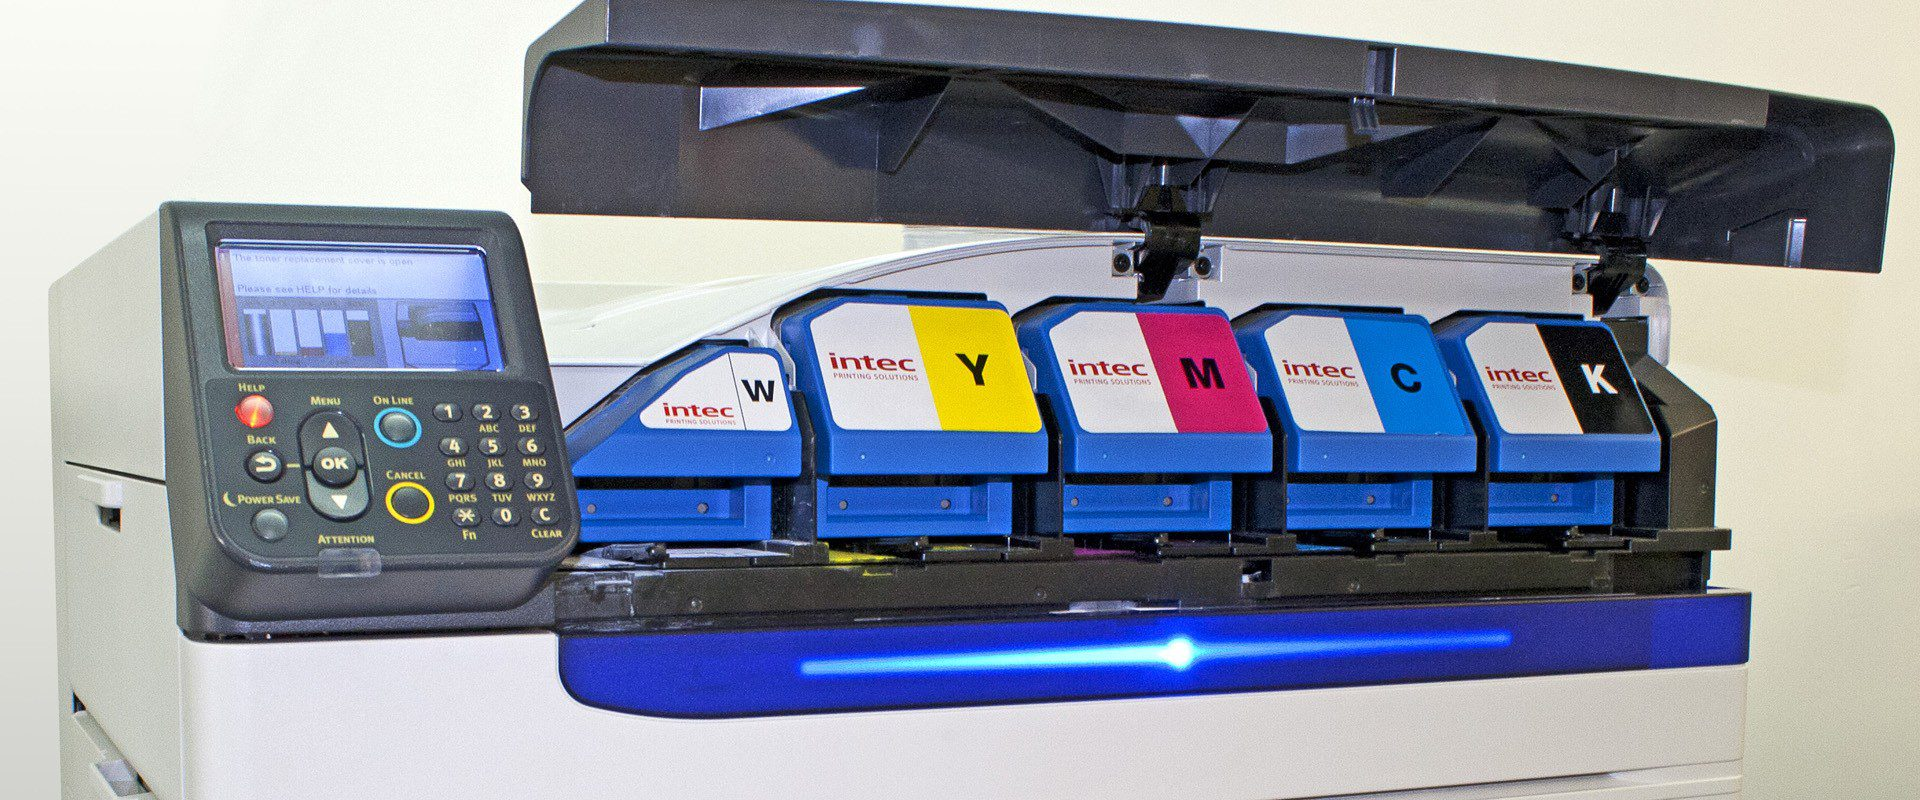 Intec ColorSplash CS5000 printer